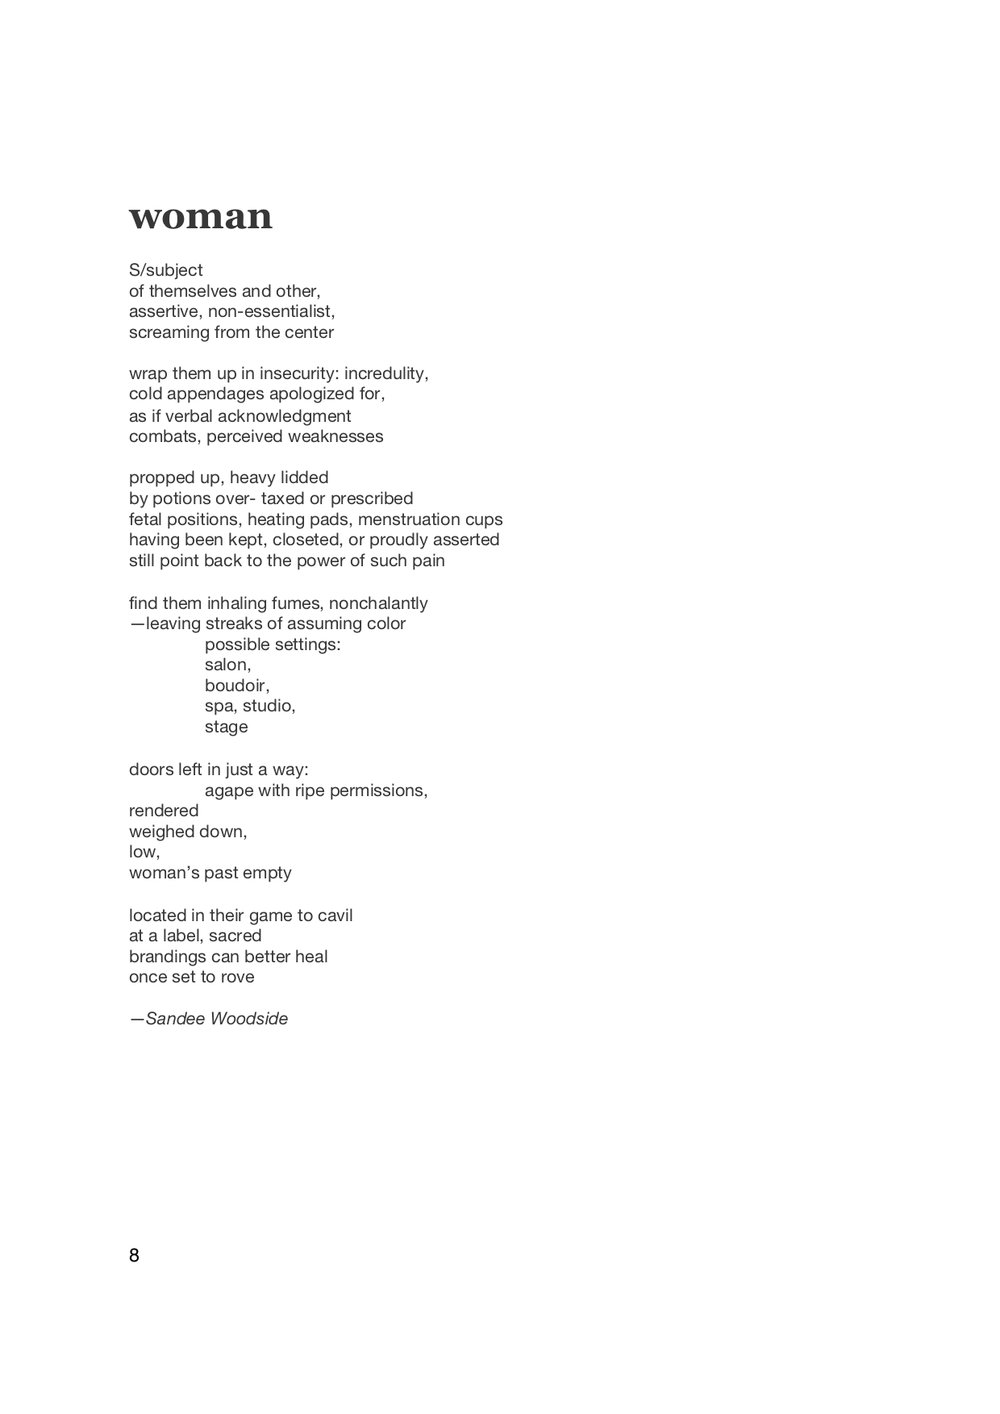 woman as in zine.jpg